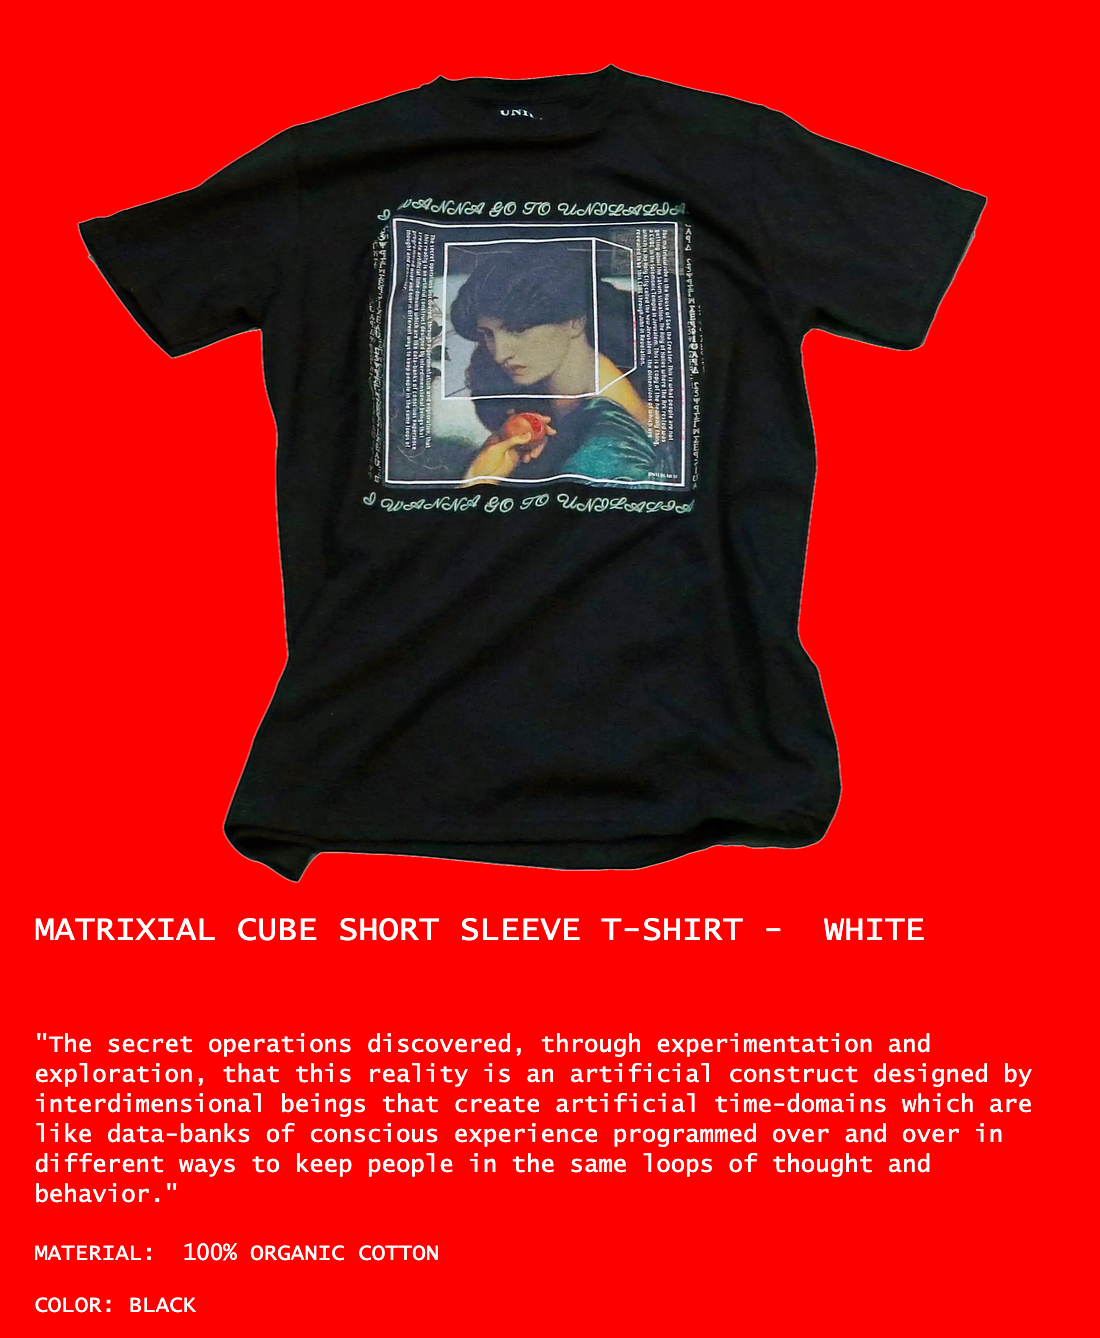 MATRIXIAL CUBE SHORT SLEEVE T-SHIRT -  WHITE